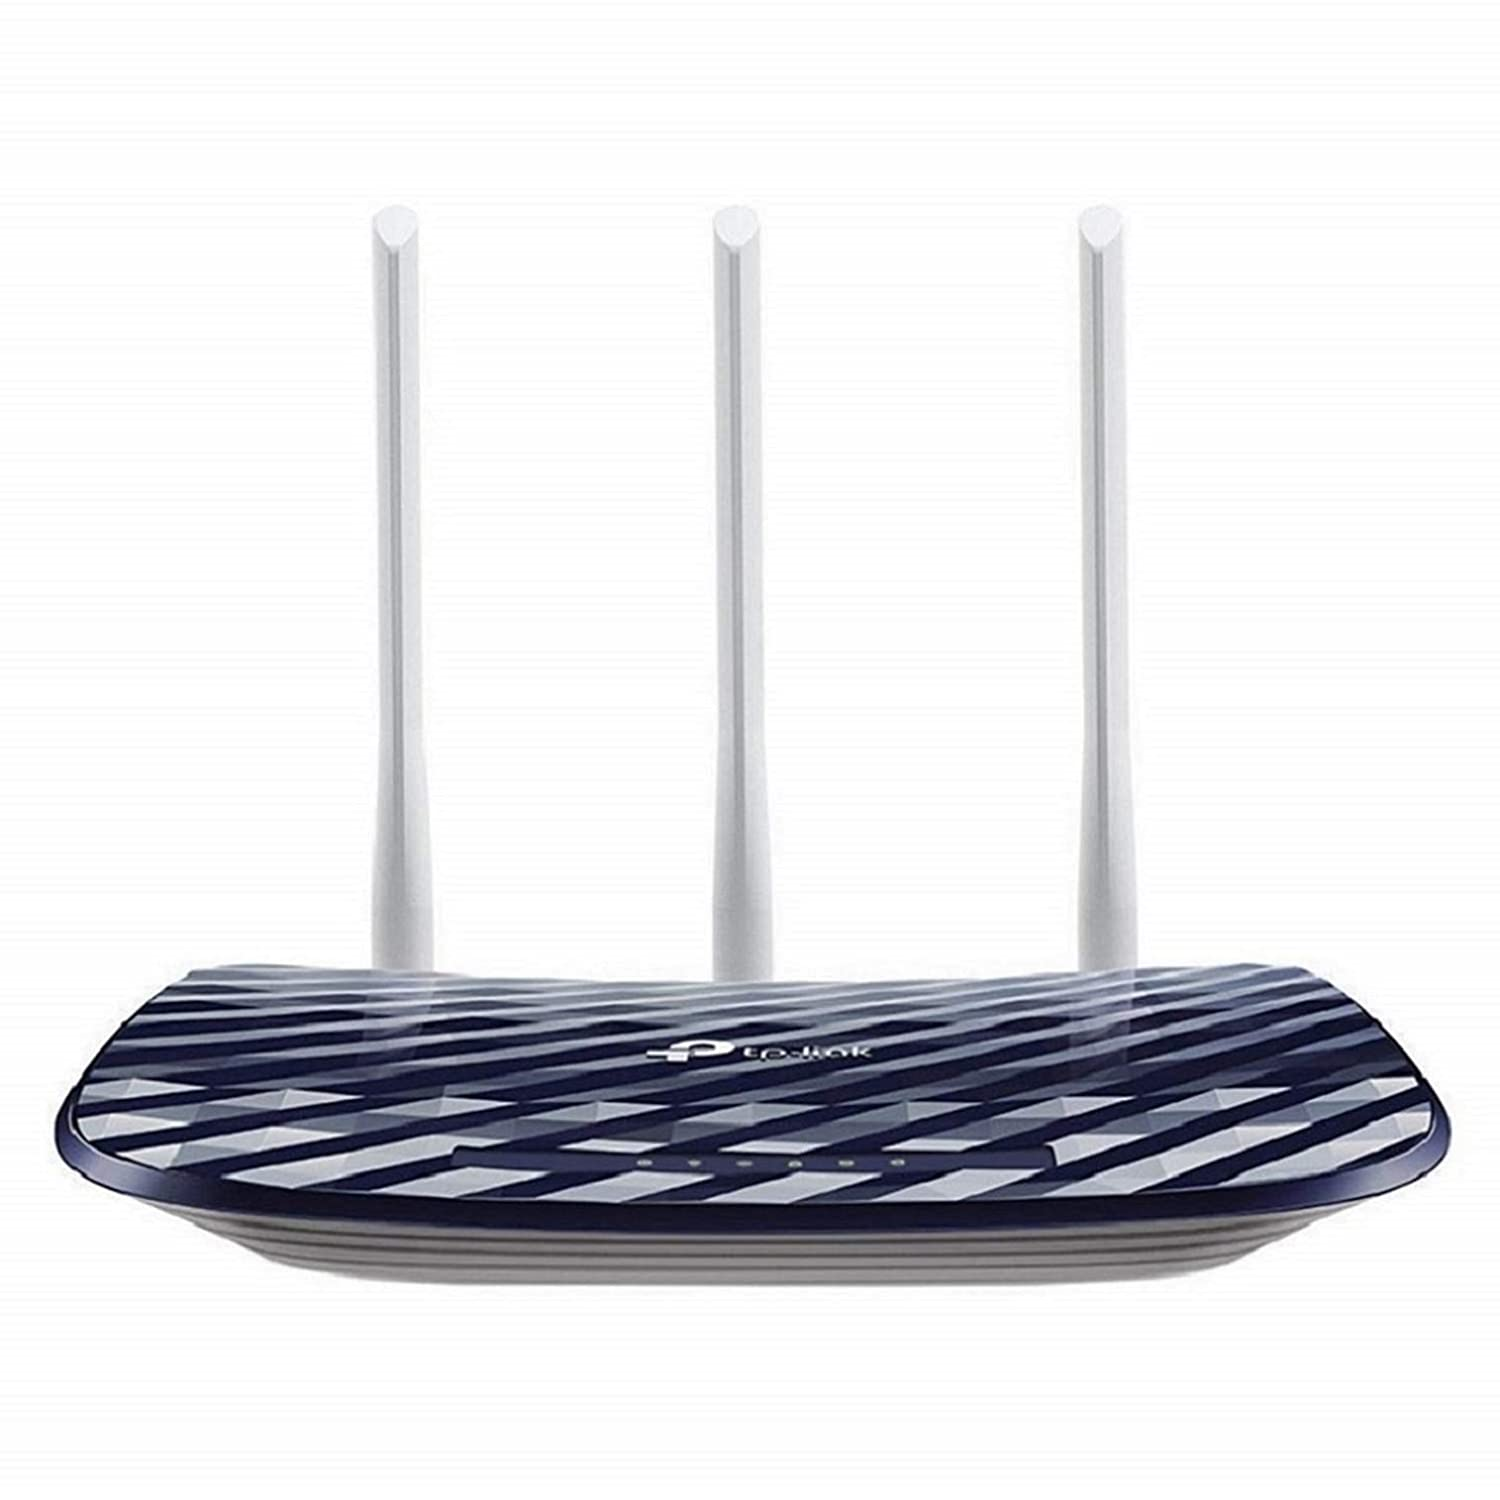 TP-Link AC750 Dual Band Wireless Cable Router, 4 10/100 LAN + 10/100 WAN Ports, Support Guest Network and Parental Control, 750Mbps Speed Wi-Fi, 3 Antennas (Archer C20)